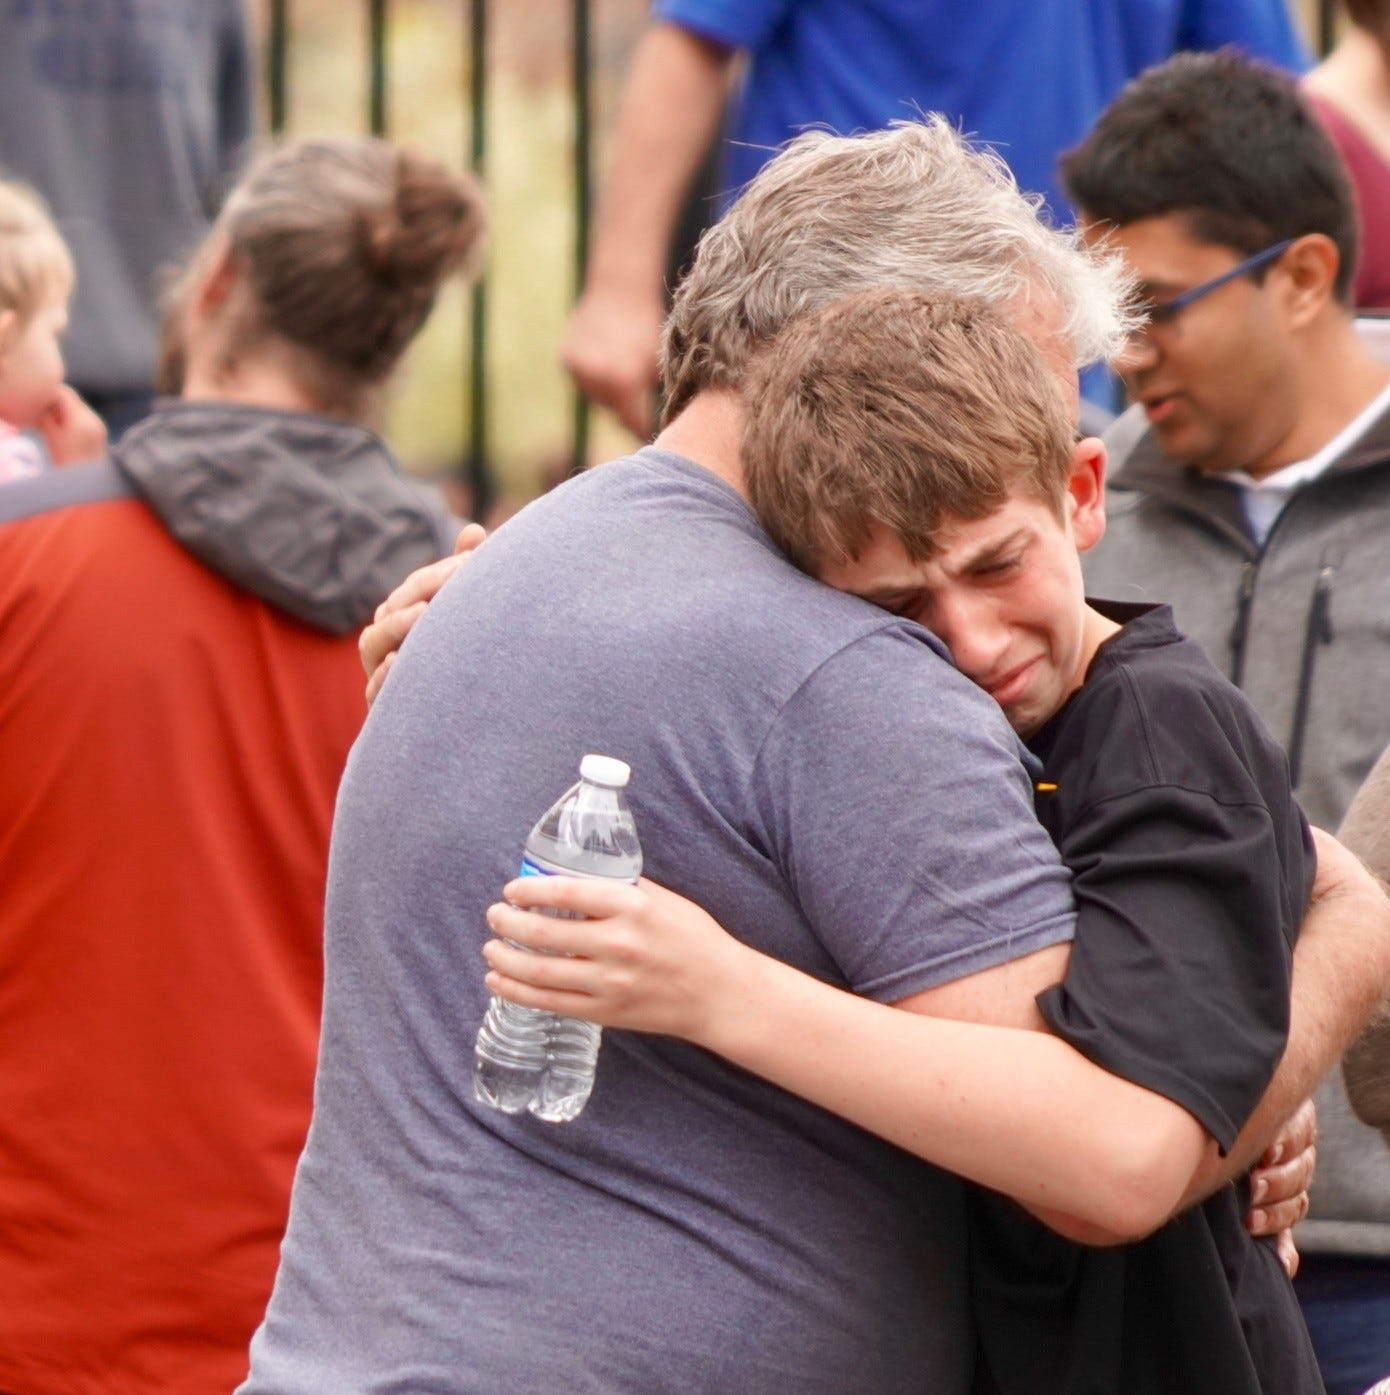 1 dead, 7 injured in shooting at Denver STEM school; 2 students in custody